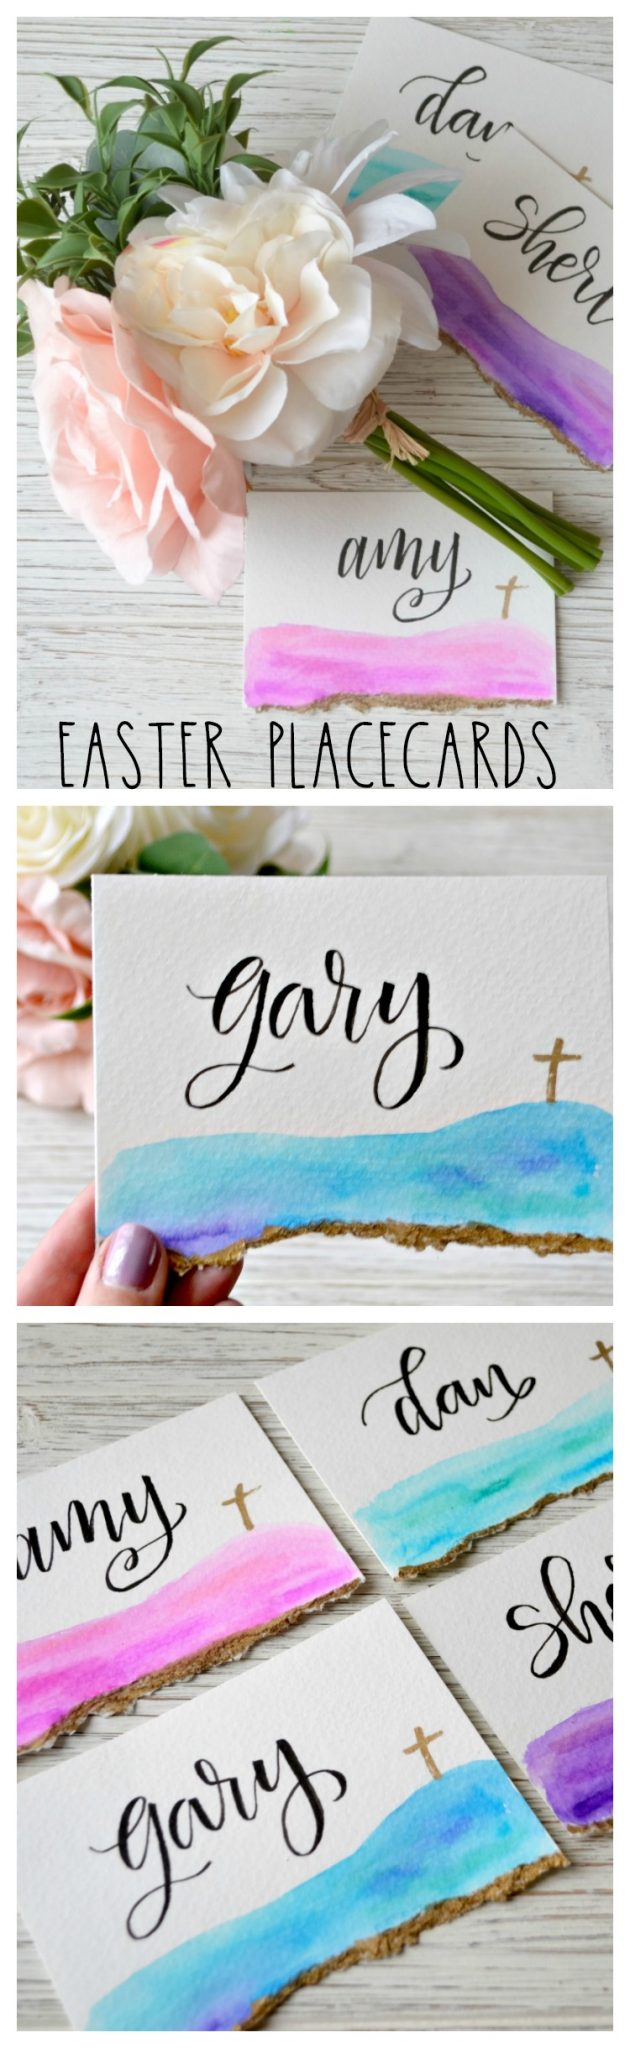 Hand Lettered Easter Place Cards with Watercolor